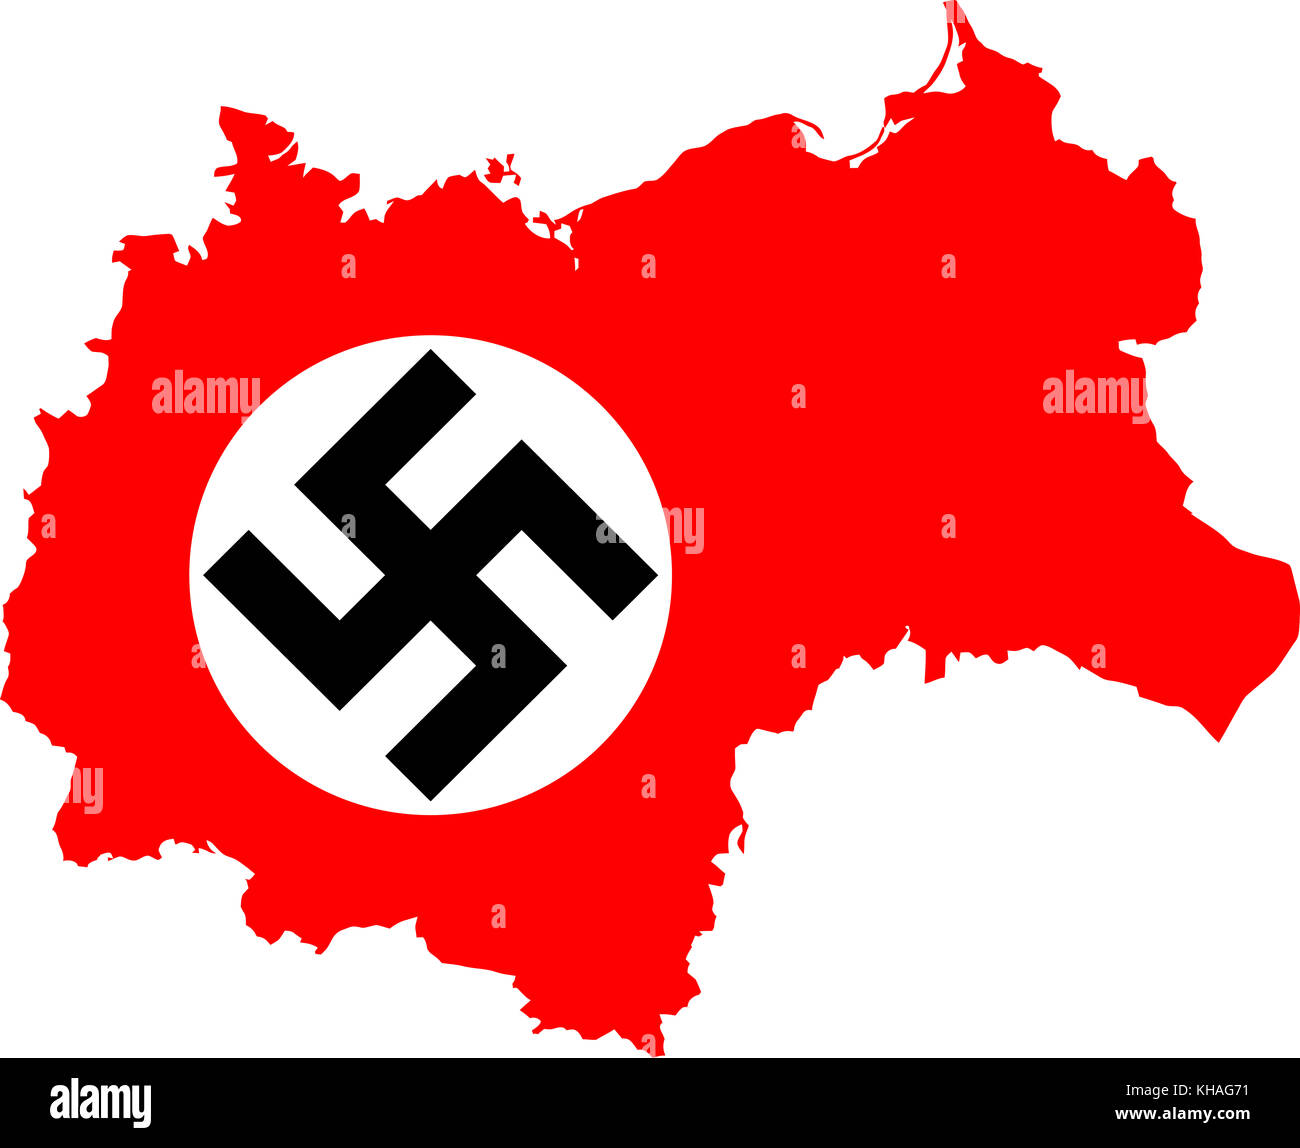 Map Of Germany 1942.Map Of Nazi Germany With Swastika Third Reich In 1942 Stock Photo